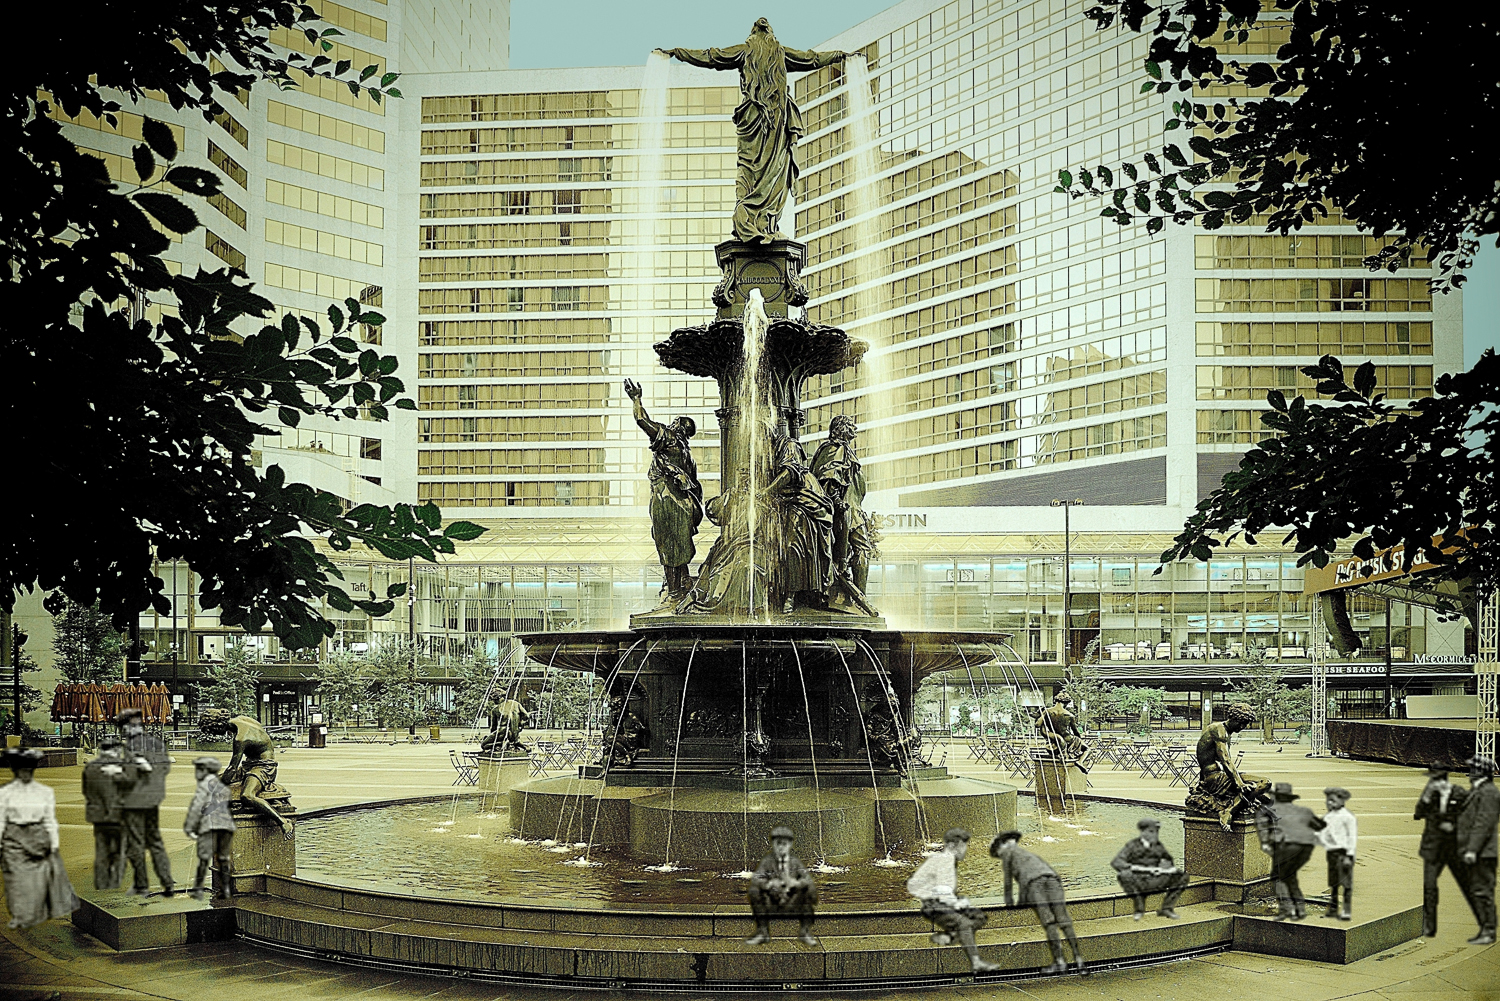 Erce Gokhan, Fountain Square- Genius of Water, 2013 & 1906. Photograph, 12 x 8 inches. Courtesy of the artist